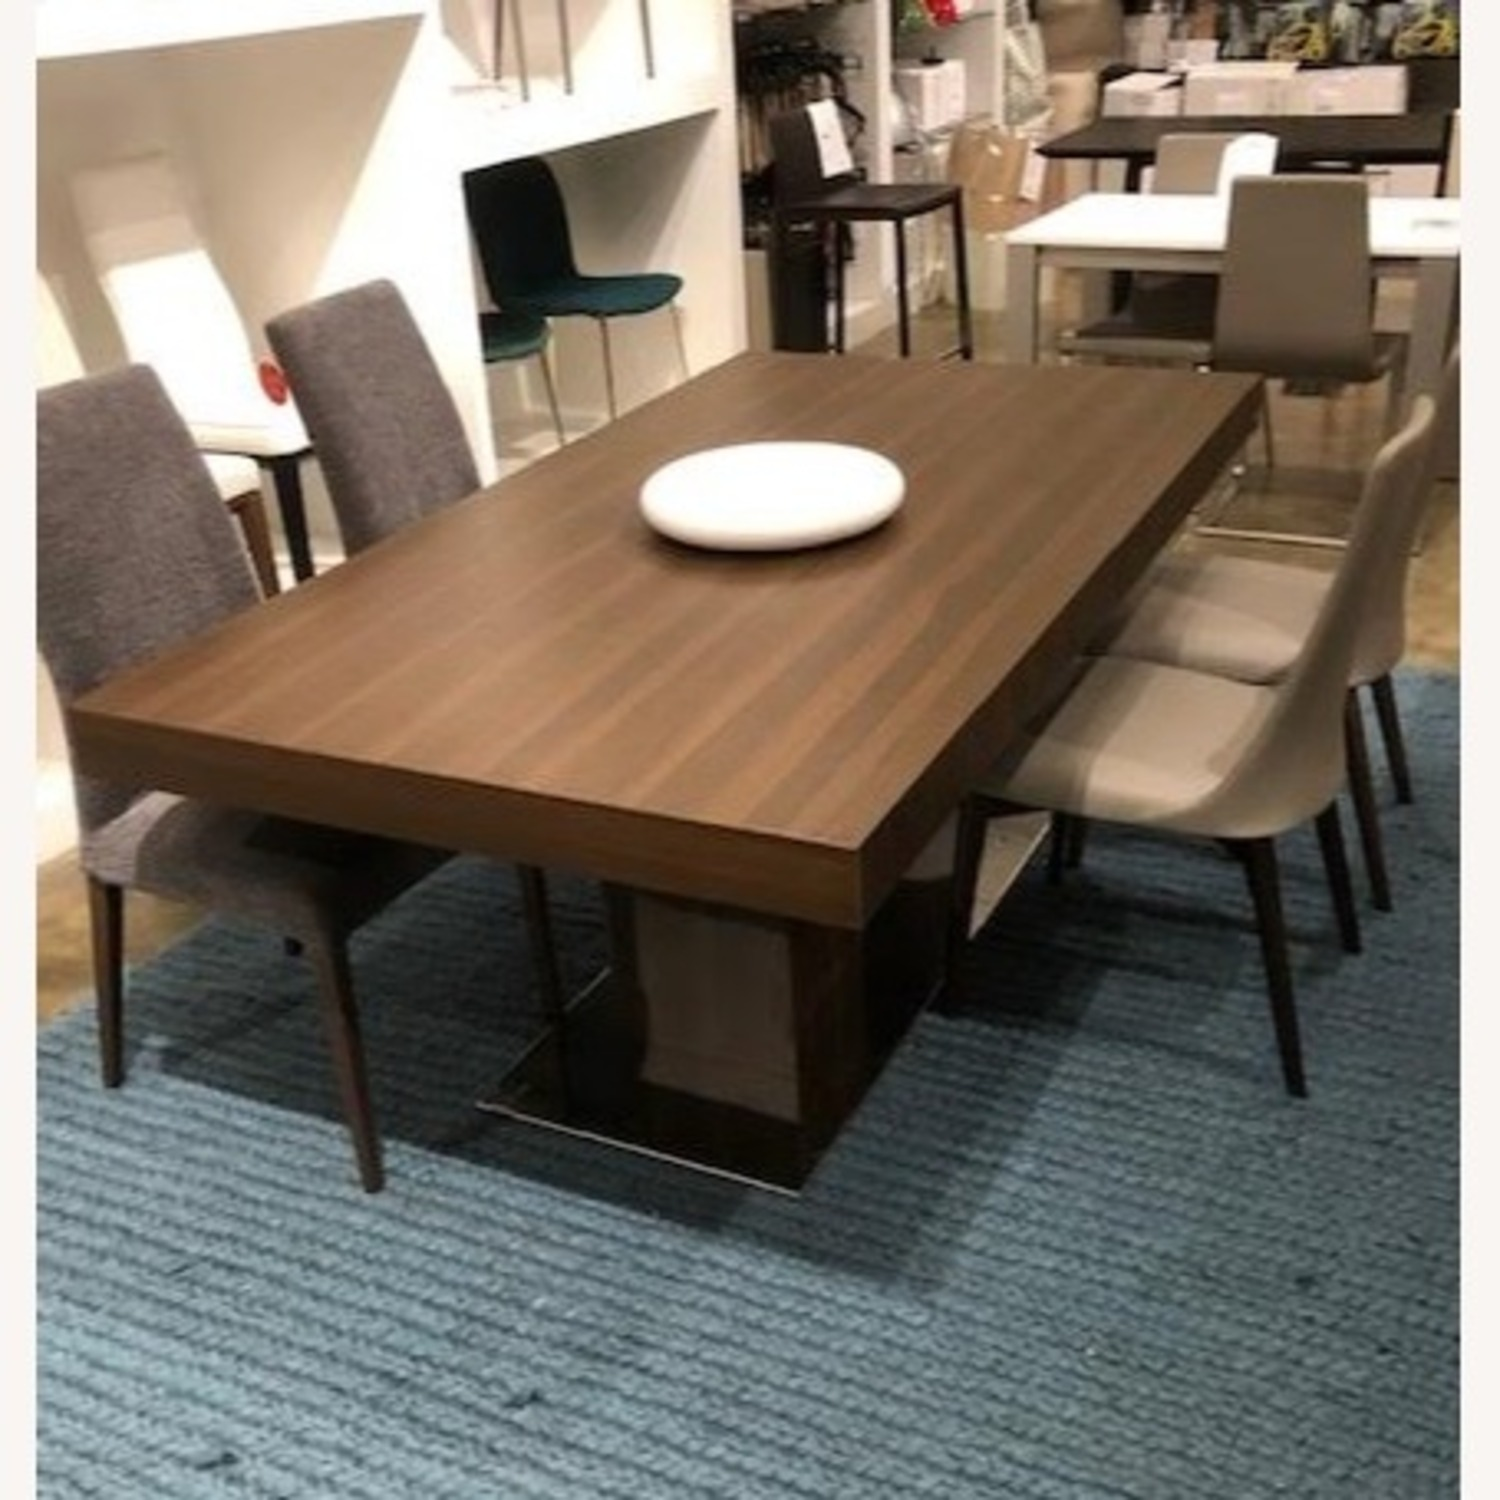 Calligaris Dining Table - image-1